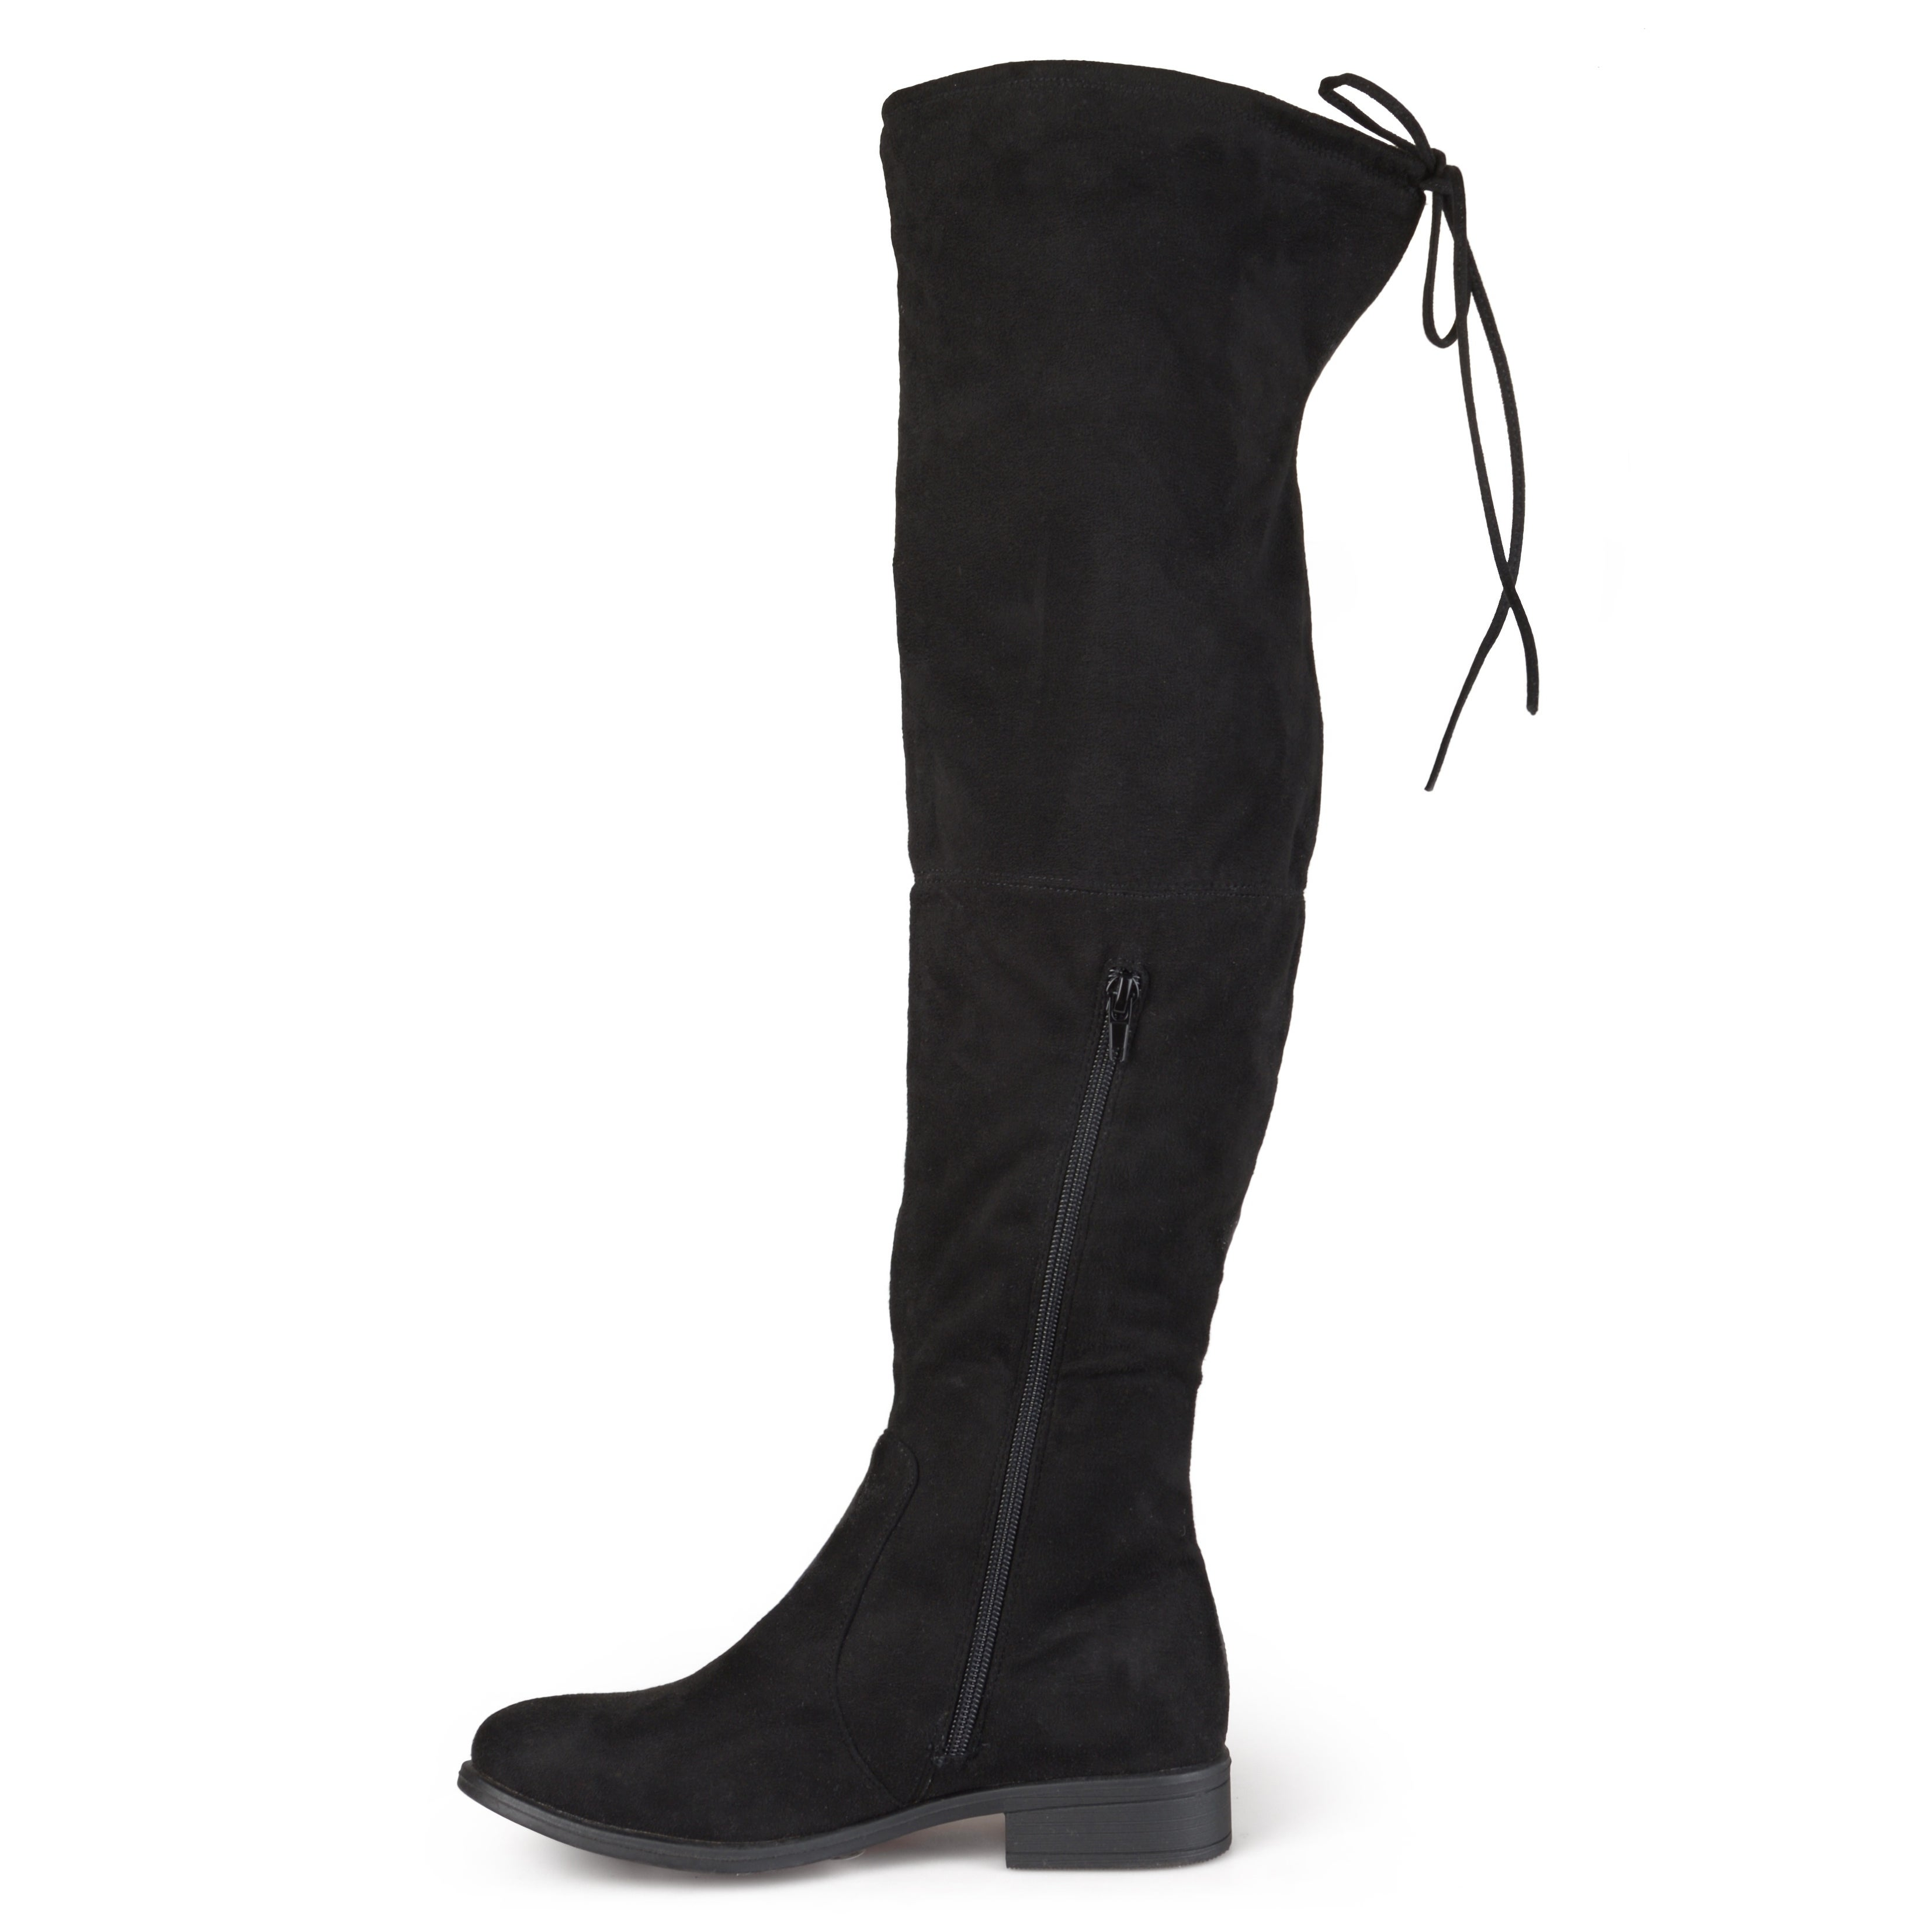 823eedd47af Shop Journee Collection Women s  Mount  Over-the-knee Faux Suede Boots -  Free Shipping Today - Overstock - 10425787